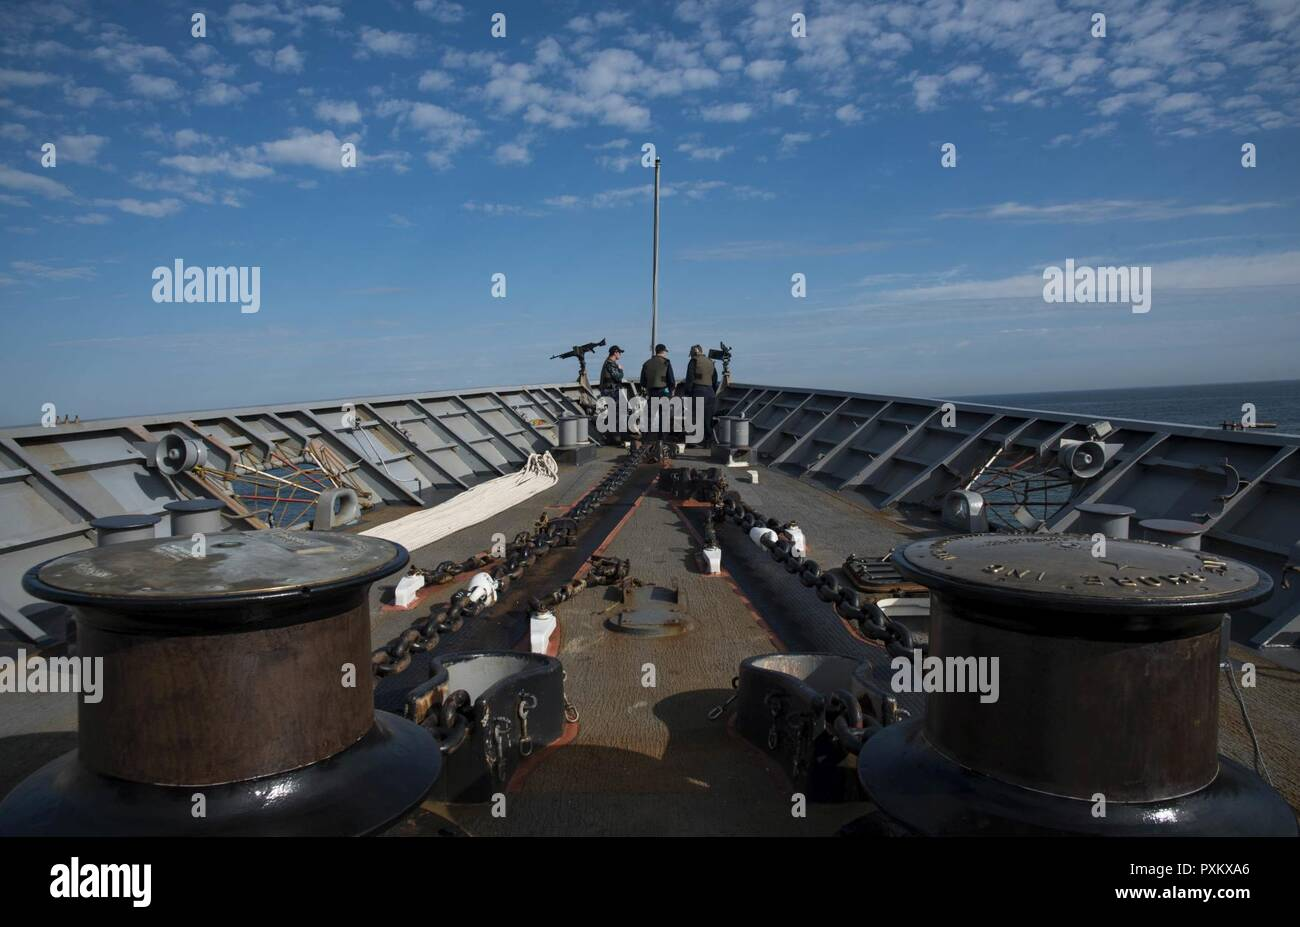 Atlantic Ocean June 01 2017 Sailors Stand Watch On The Forecastle Of The Guided Missile Cruiser Uss Monterey Cg 61 Monterey Is Currently Underway